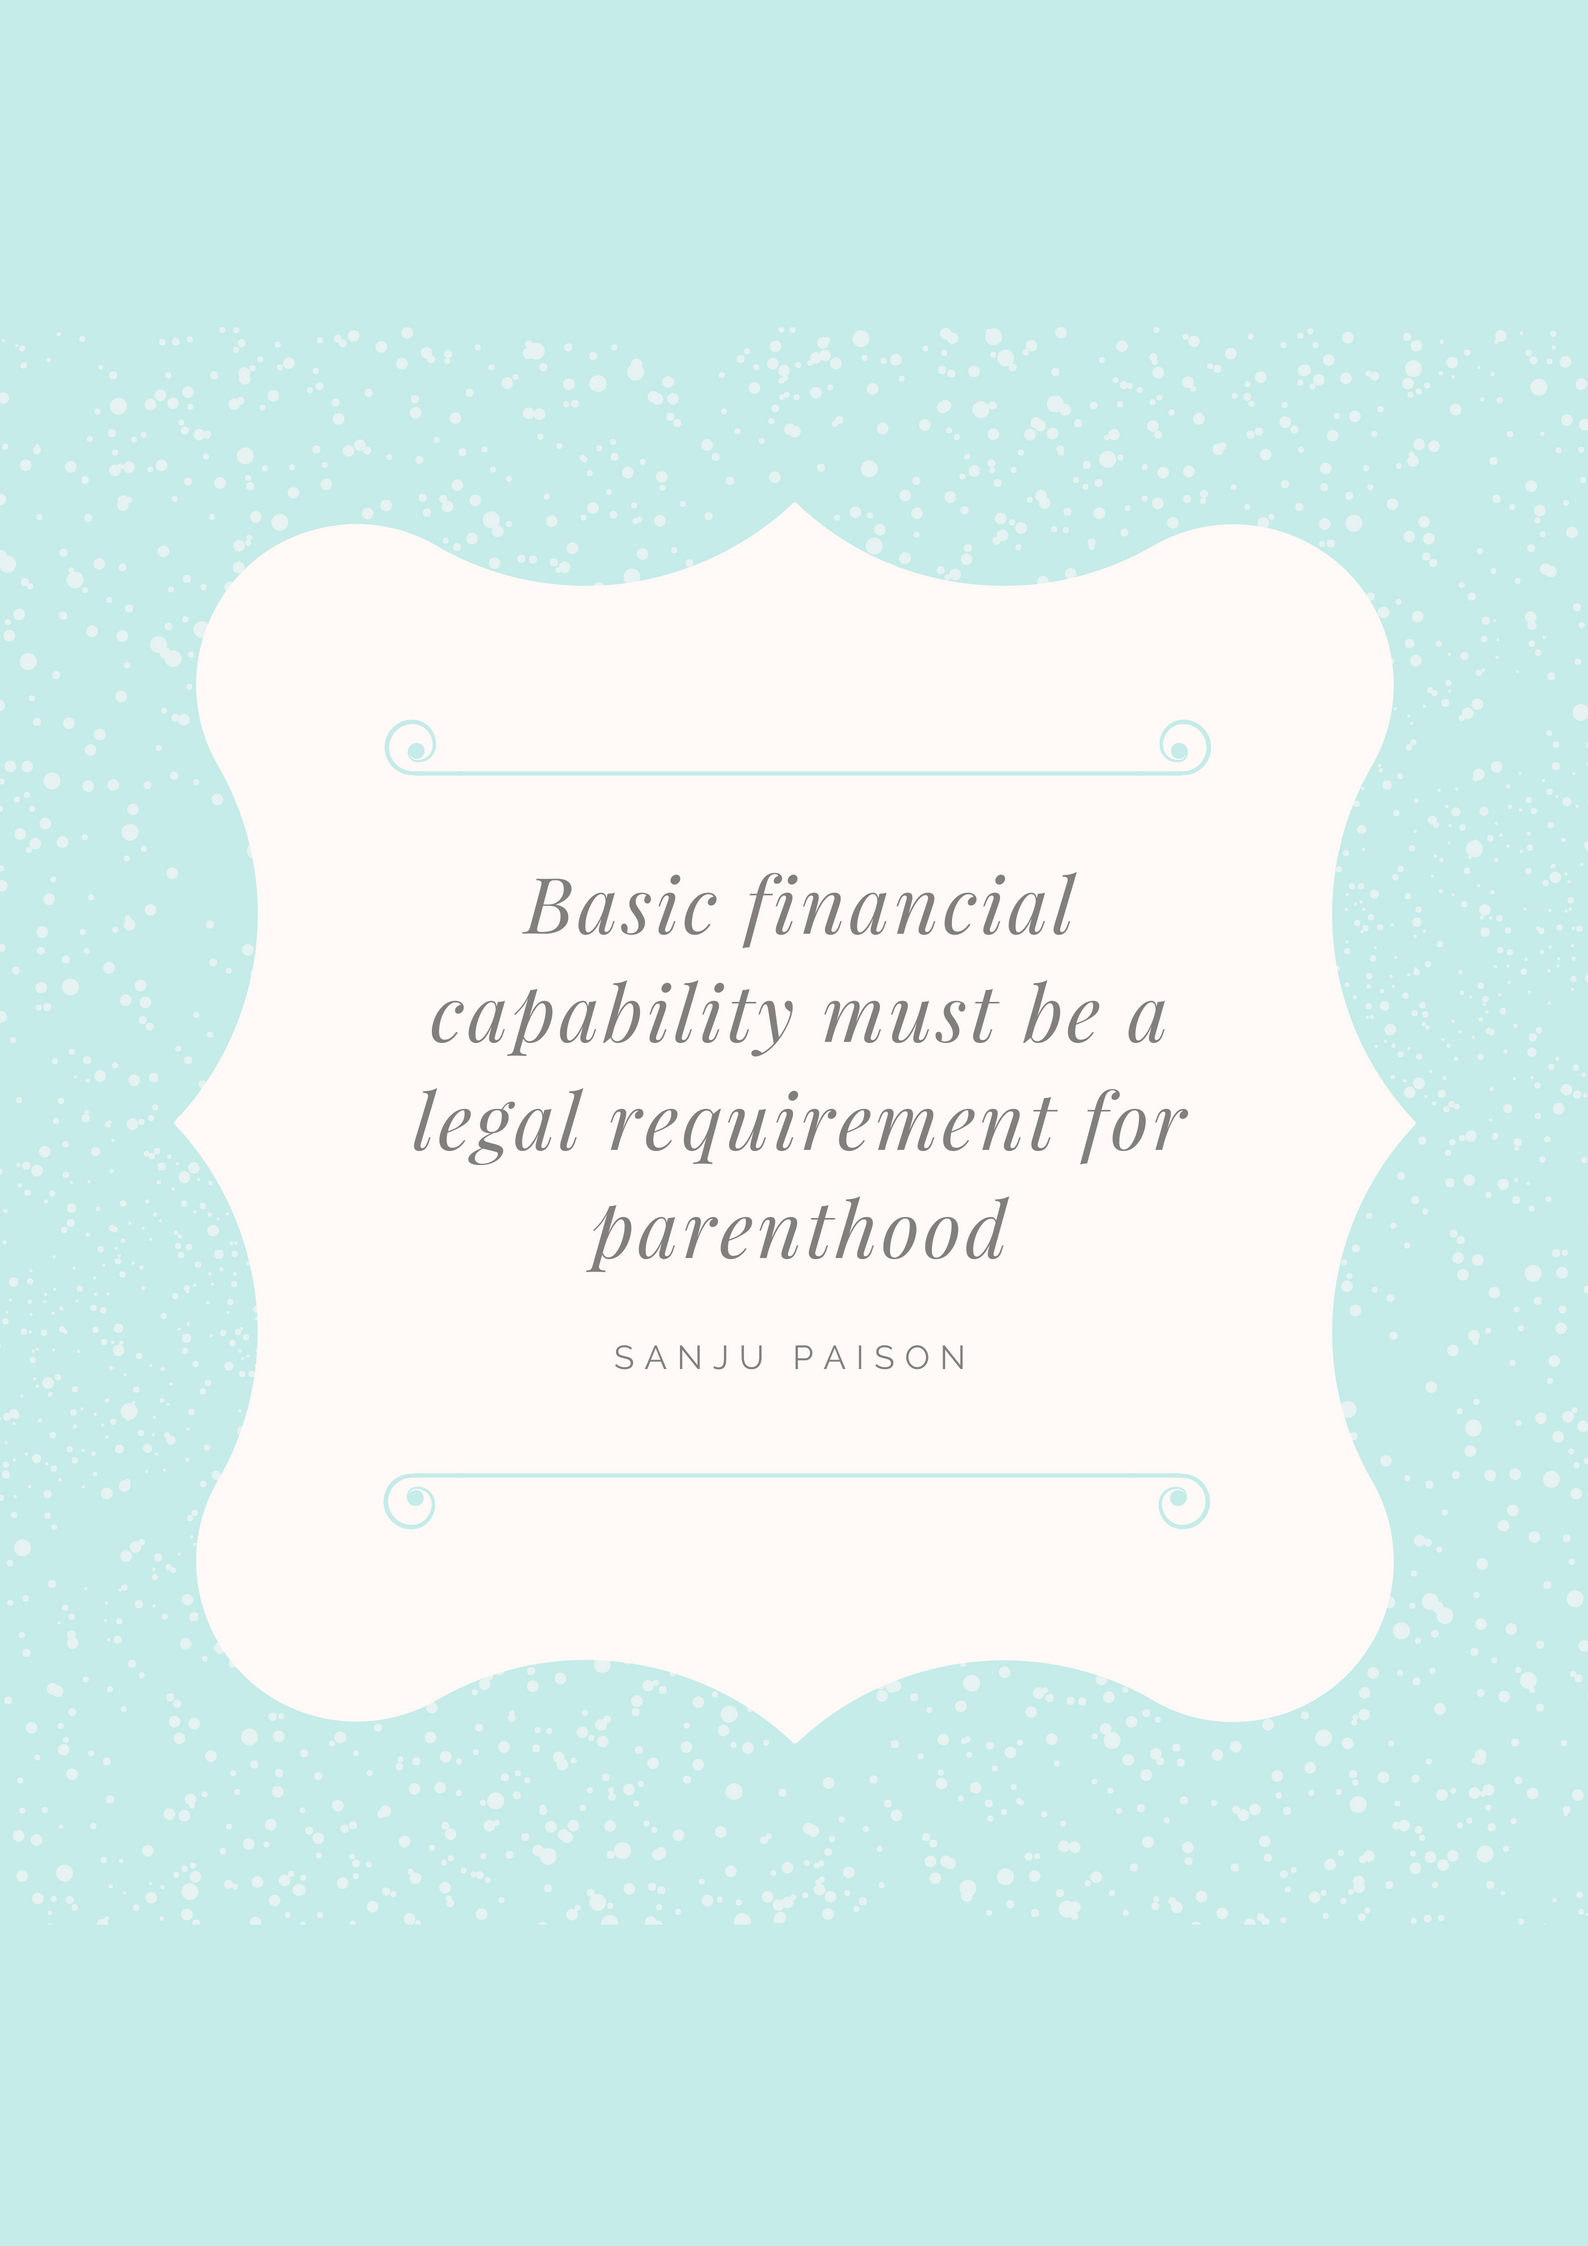 Basic financial capability must be a legal requirement for parenthood – Sanju Paison